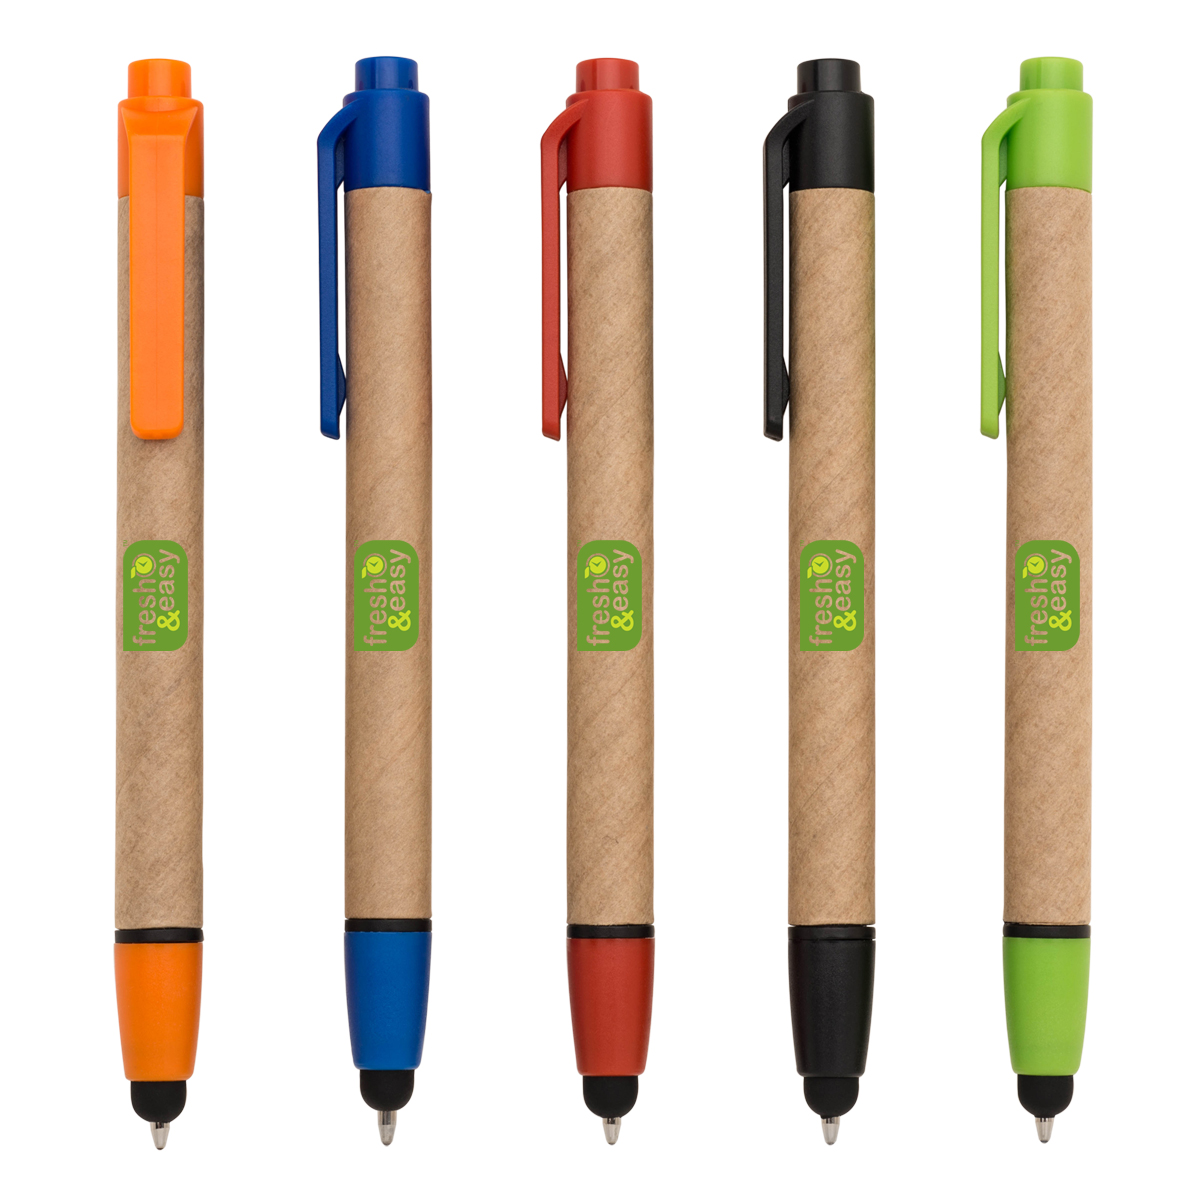 ECO FRIENDLY RECYCLED PAPER BALLPOINT PEN W/ STYLUS